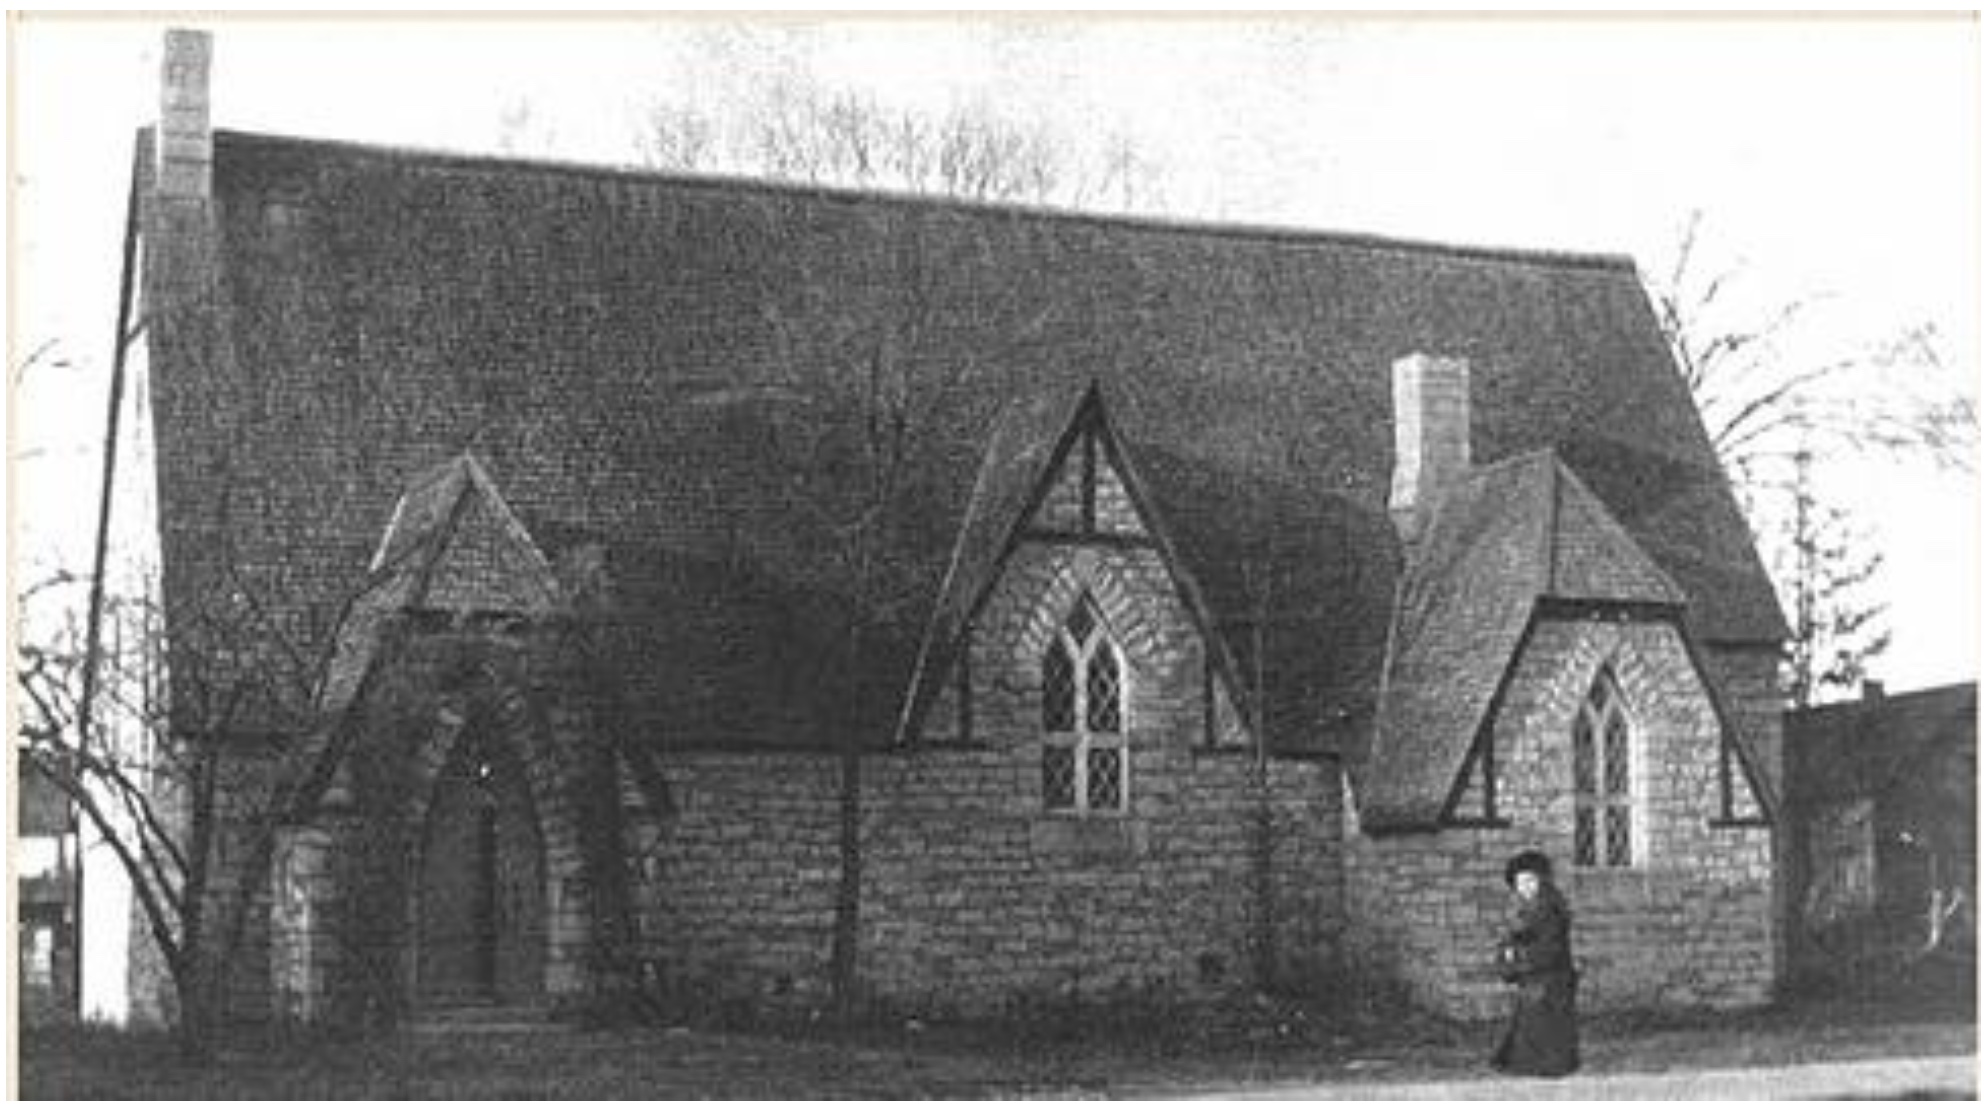 Rendering of All Saints' Church by Thomas Fuller, circa 1865